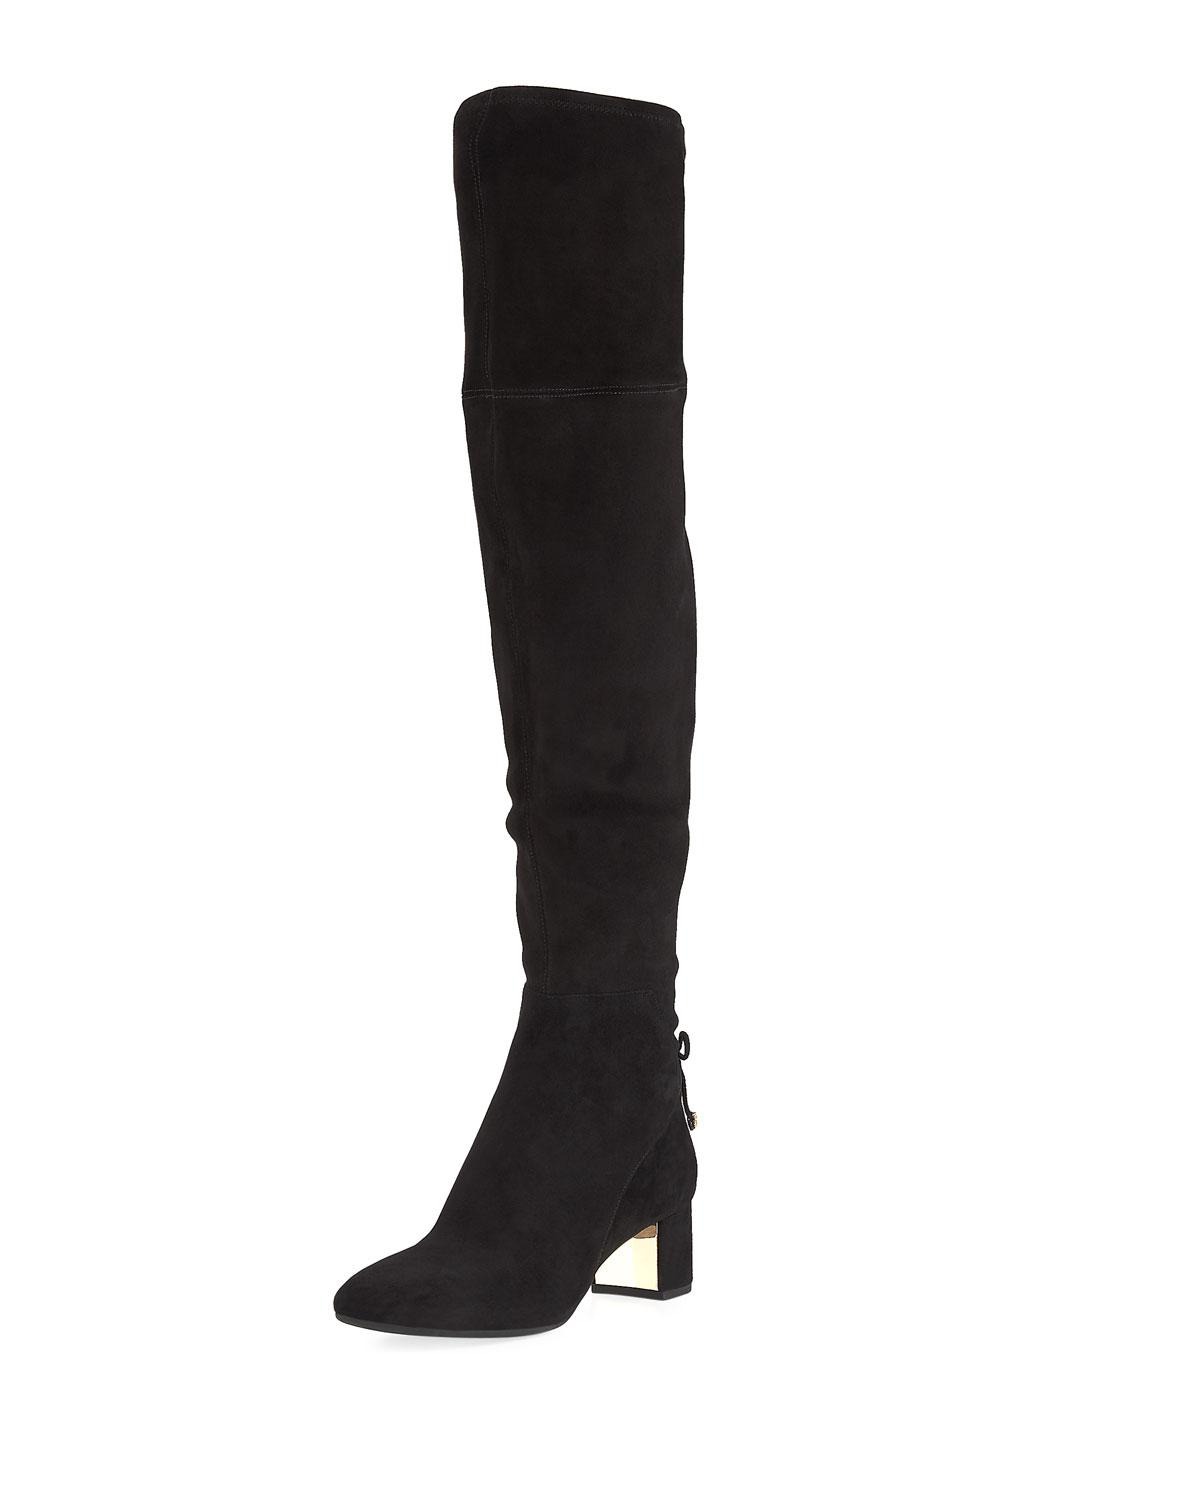 7d283414242 Lyst - Tory Burch Laila 45mm Over-the-knee Boot in Black